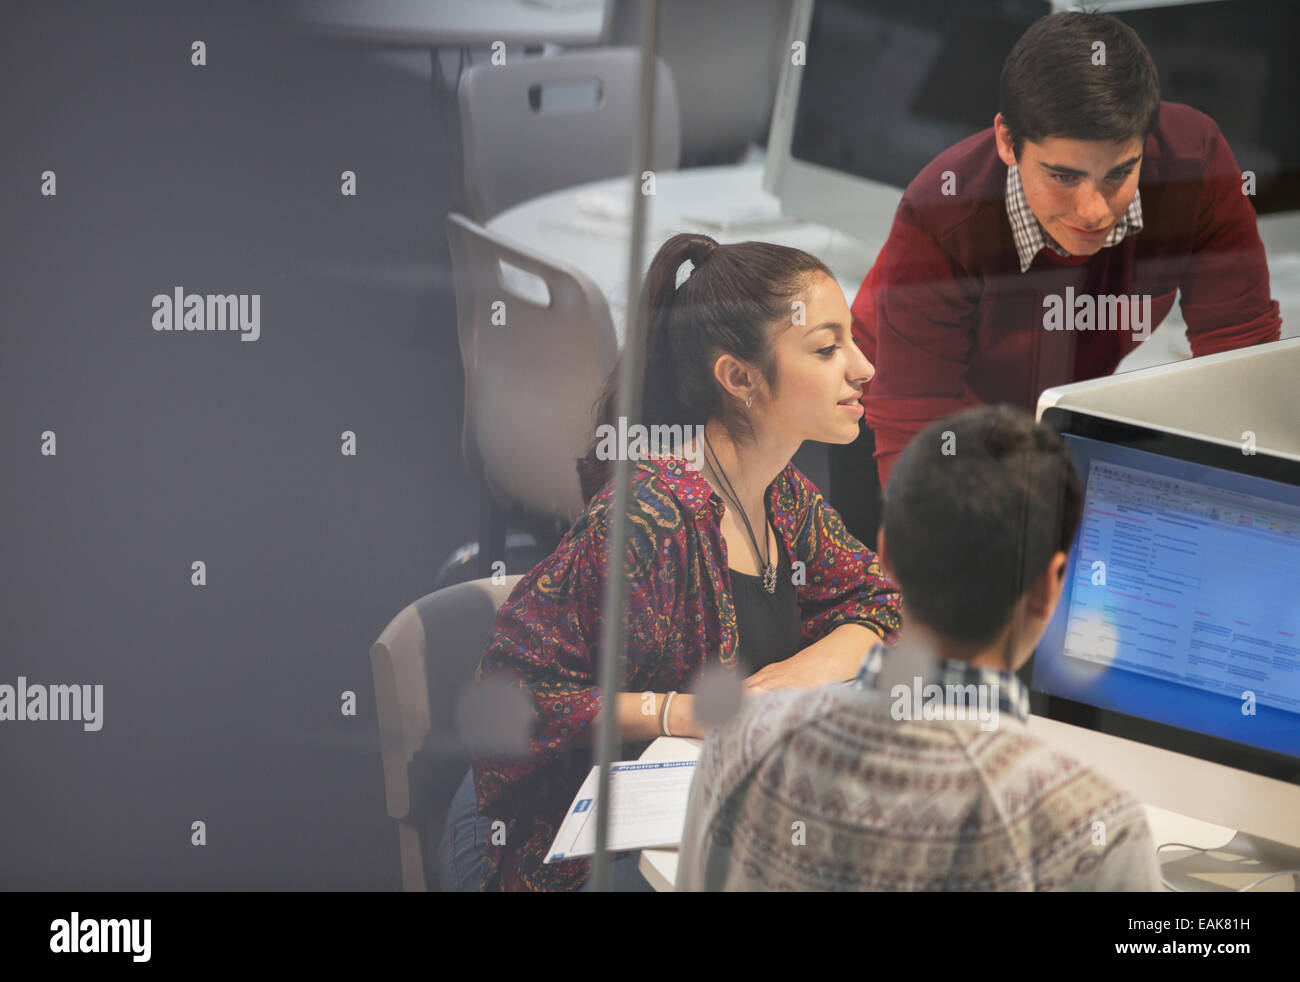 Students during IT lesson - Stock Image